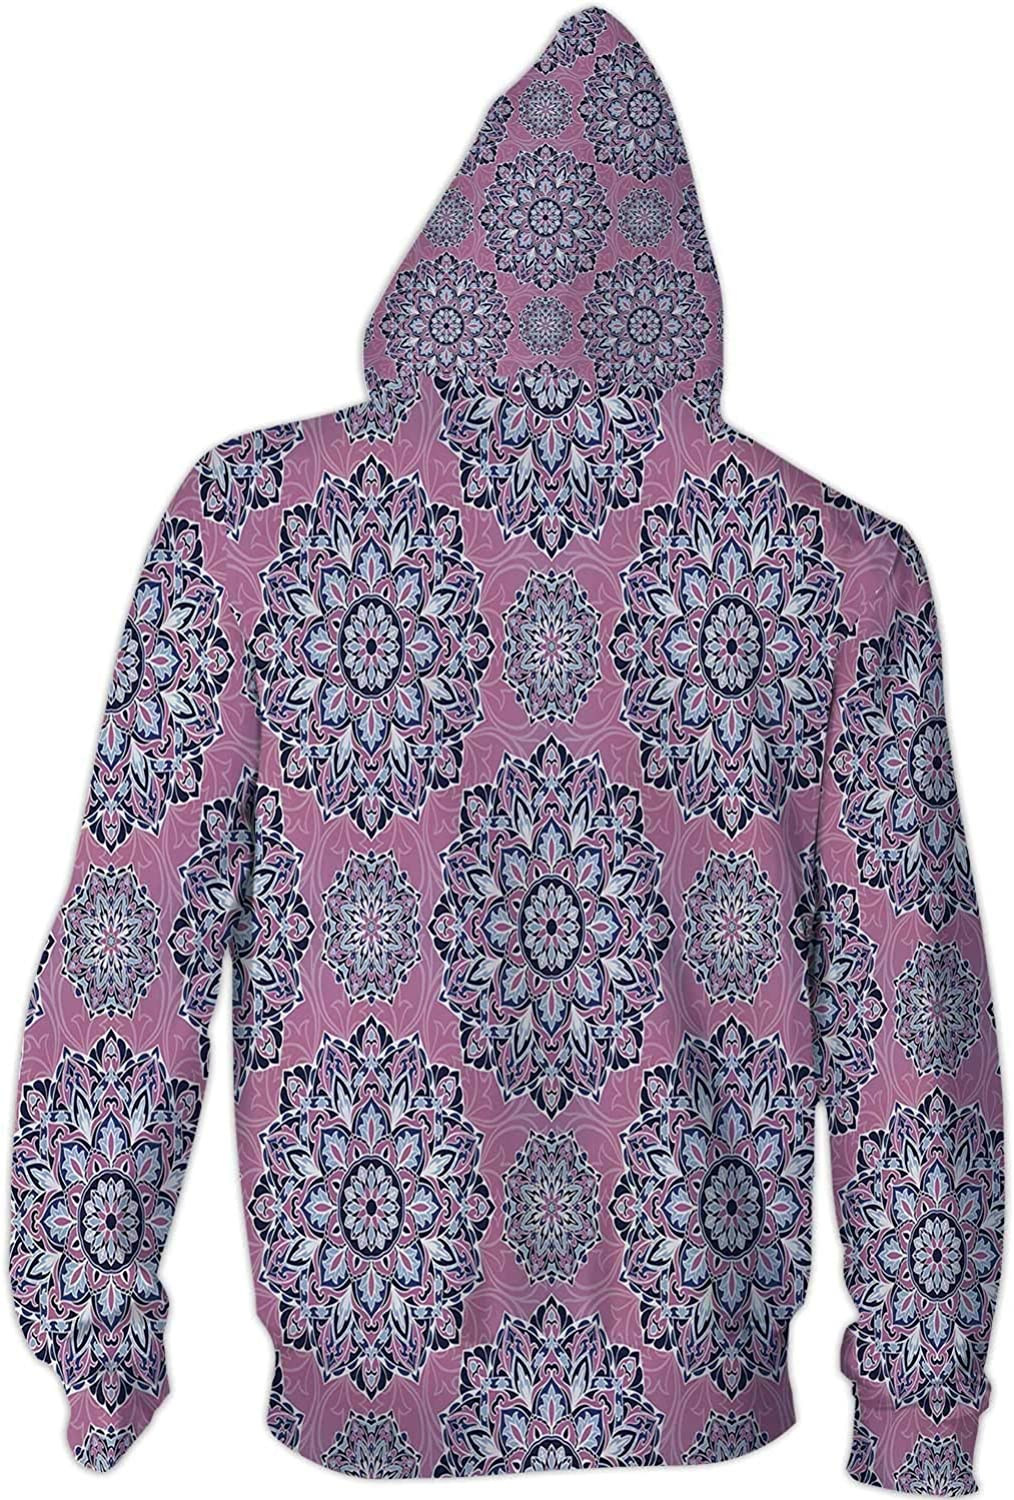 Subtle Halftone dots Vector Texture Overlay Illustration Grainy,Men//Womens Warm Outerwear Jackets and Hoodies Textured S